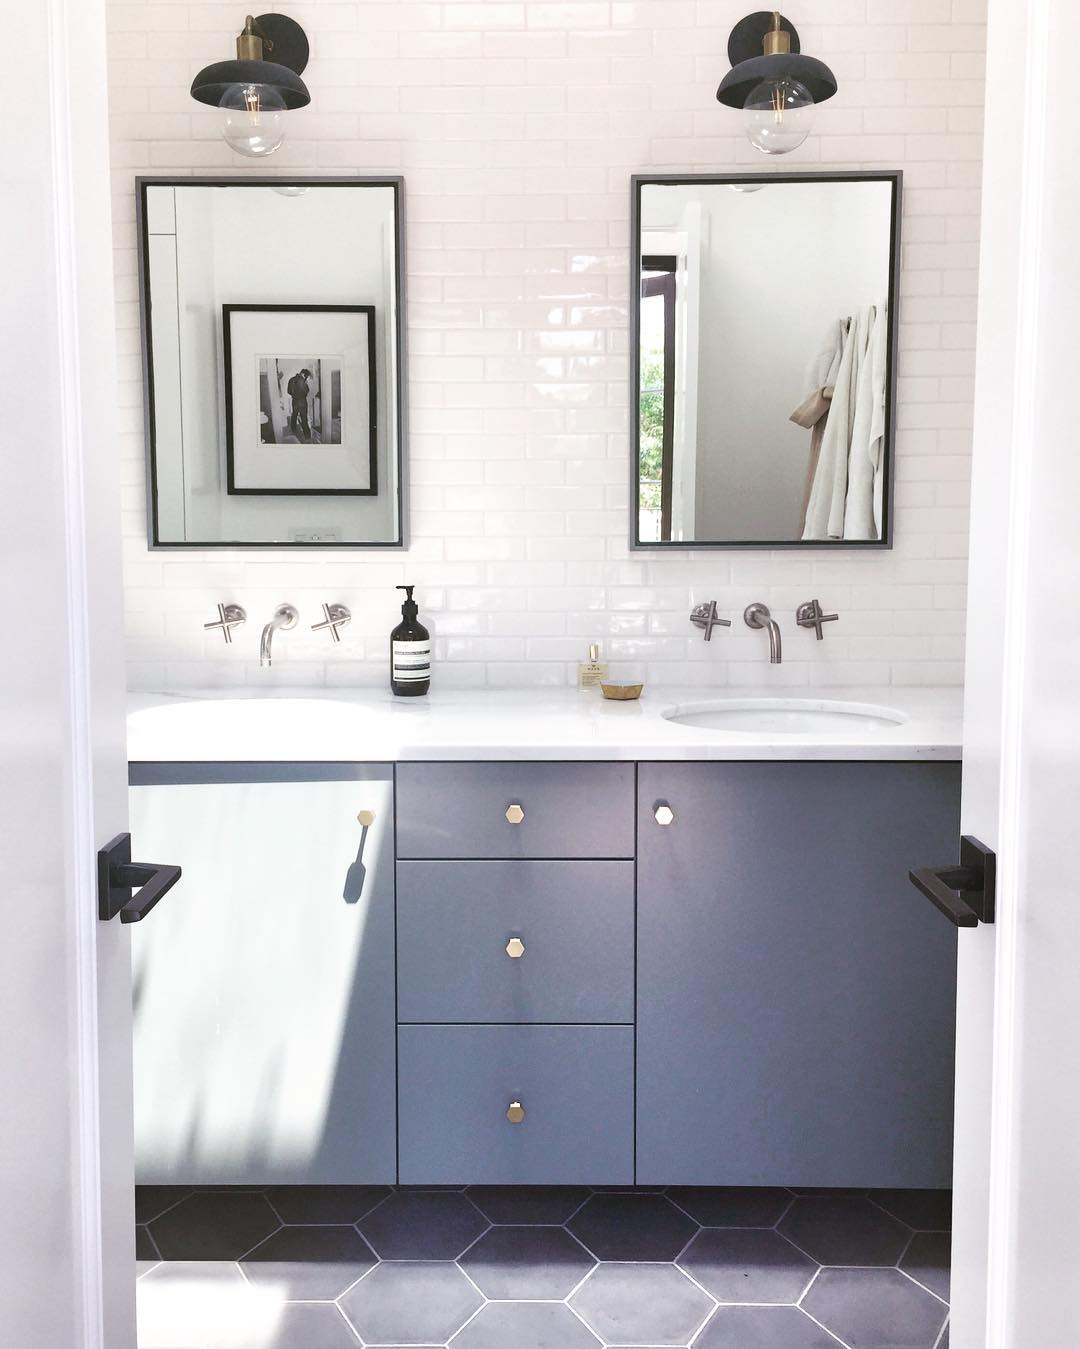 Dream bathroom reno: big grey hex tile, modern fixtures, and tile ...